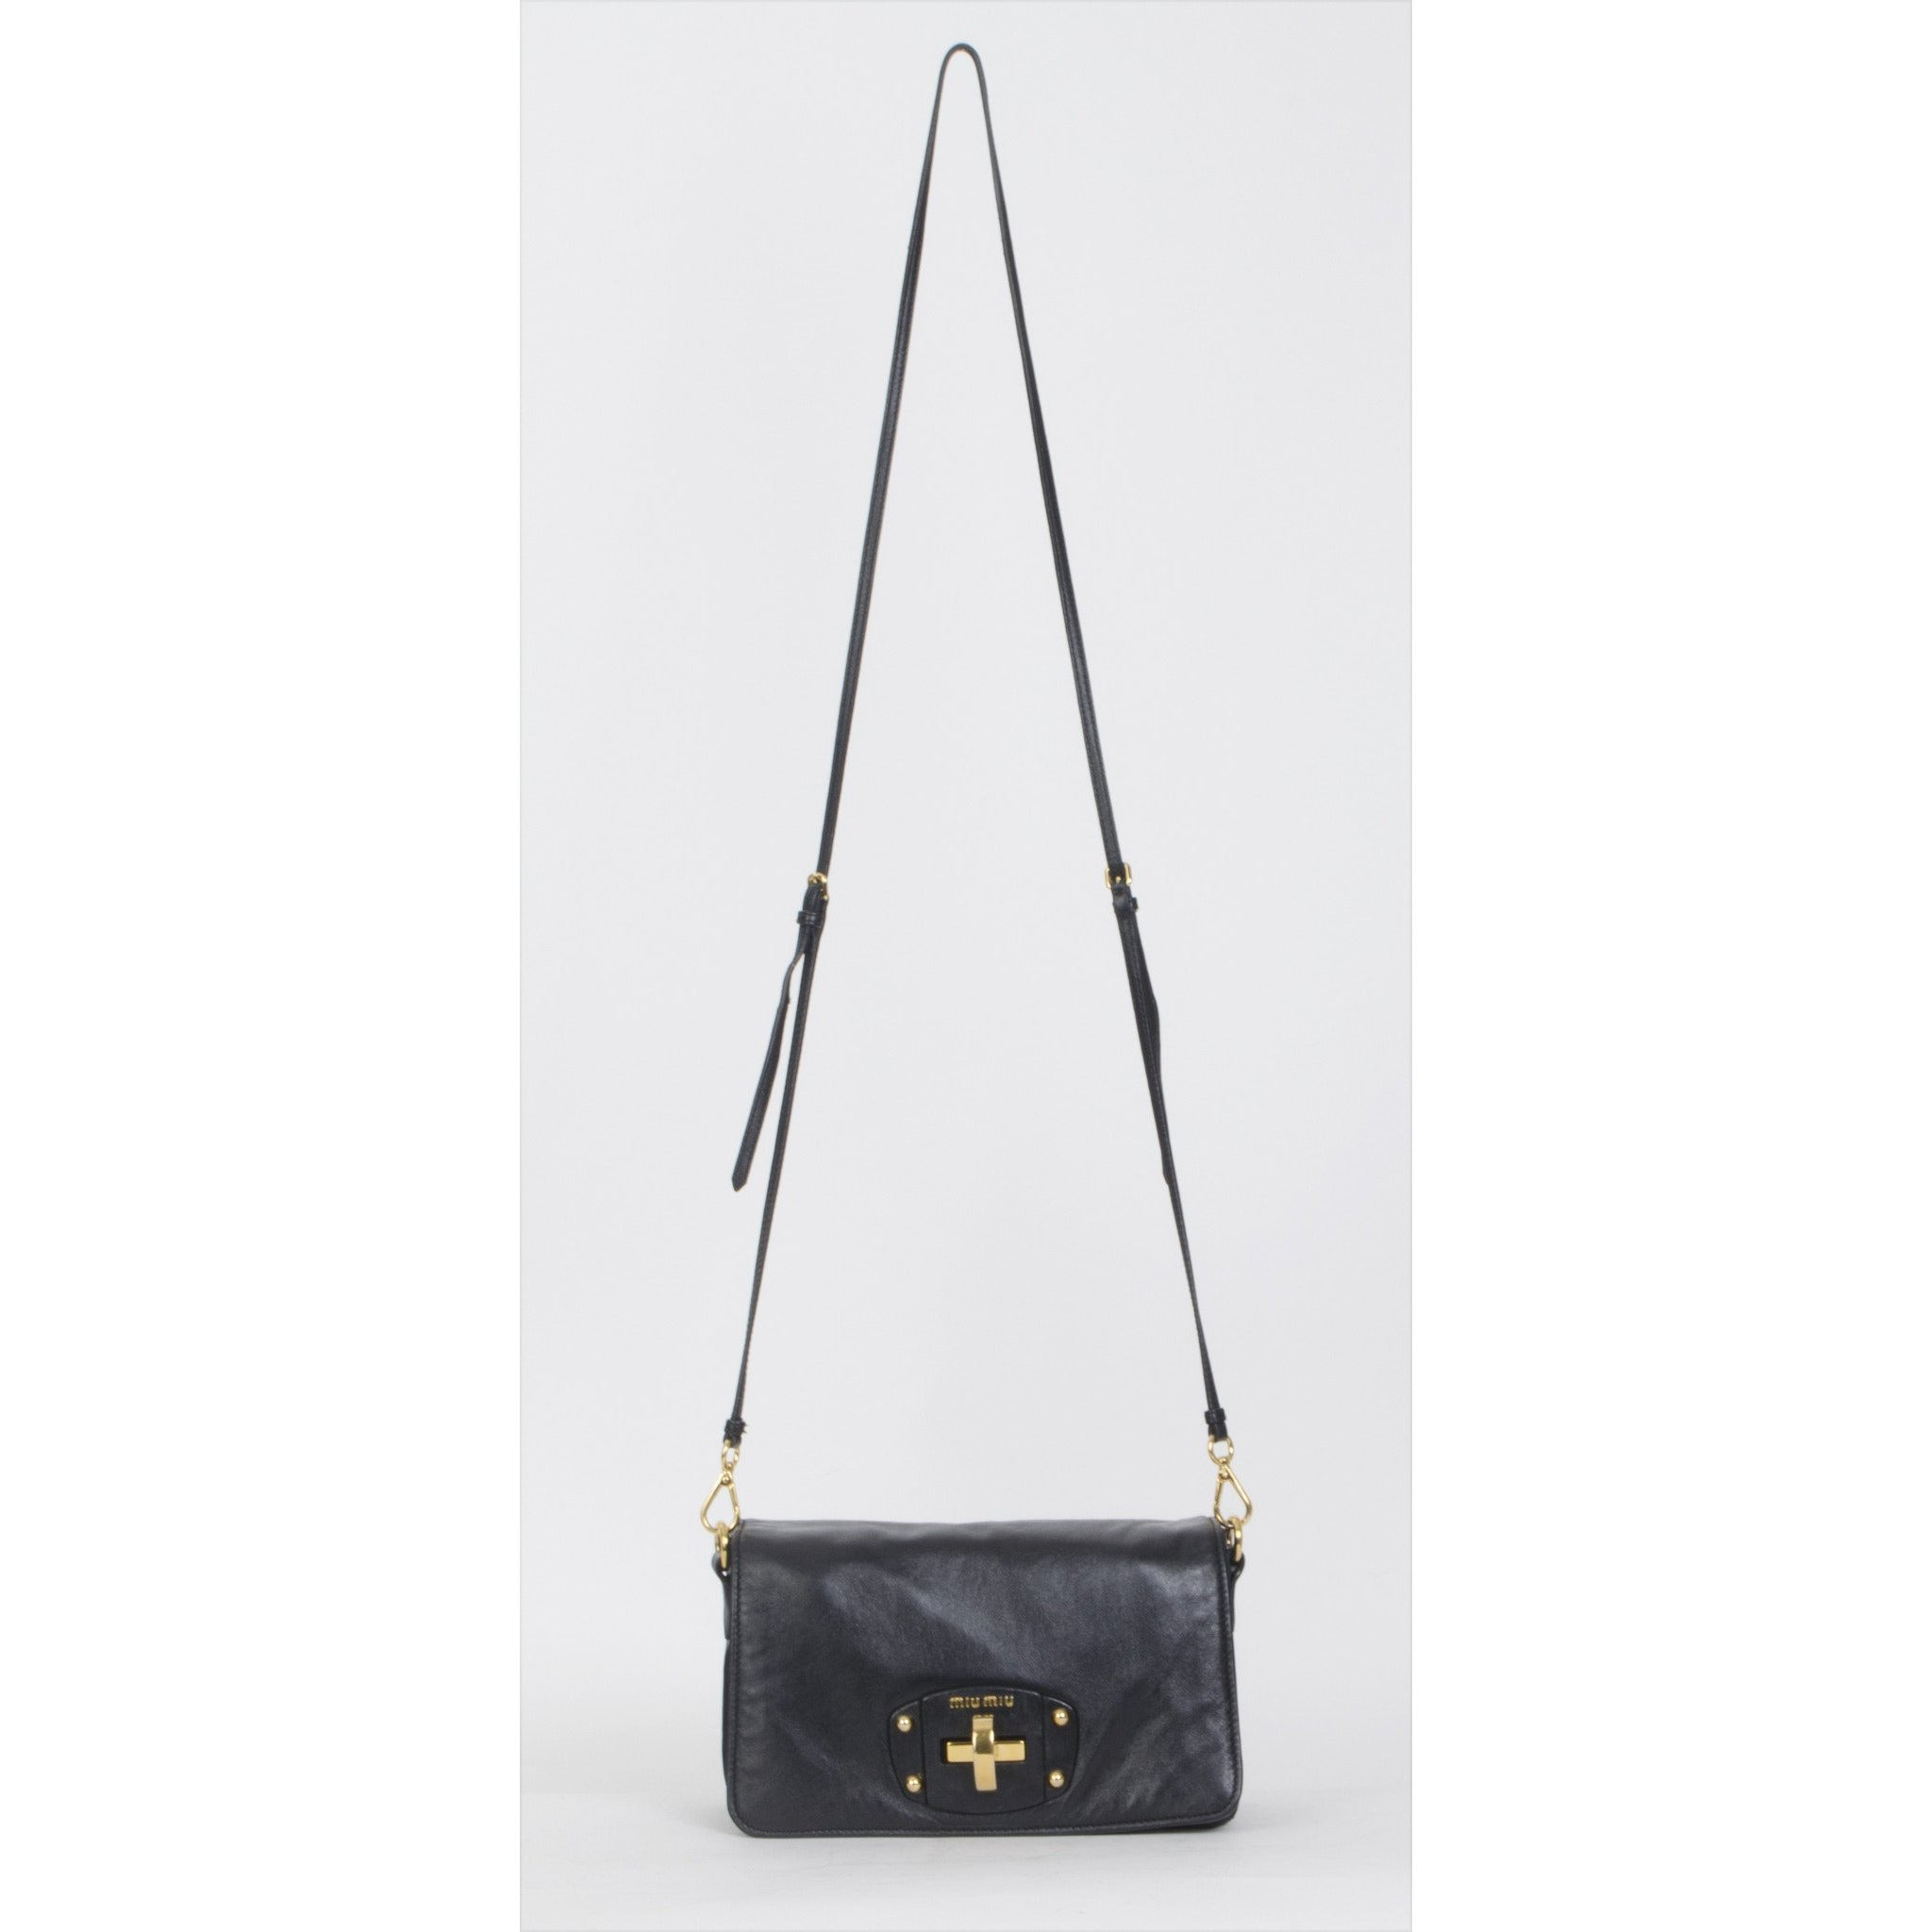 Miu Miu Crossbody - aptiques by Authentic PreOwned